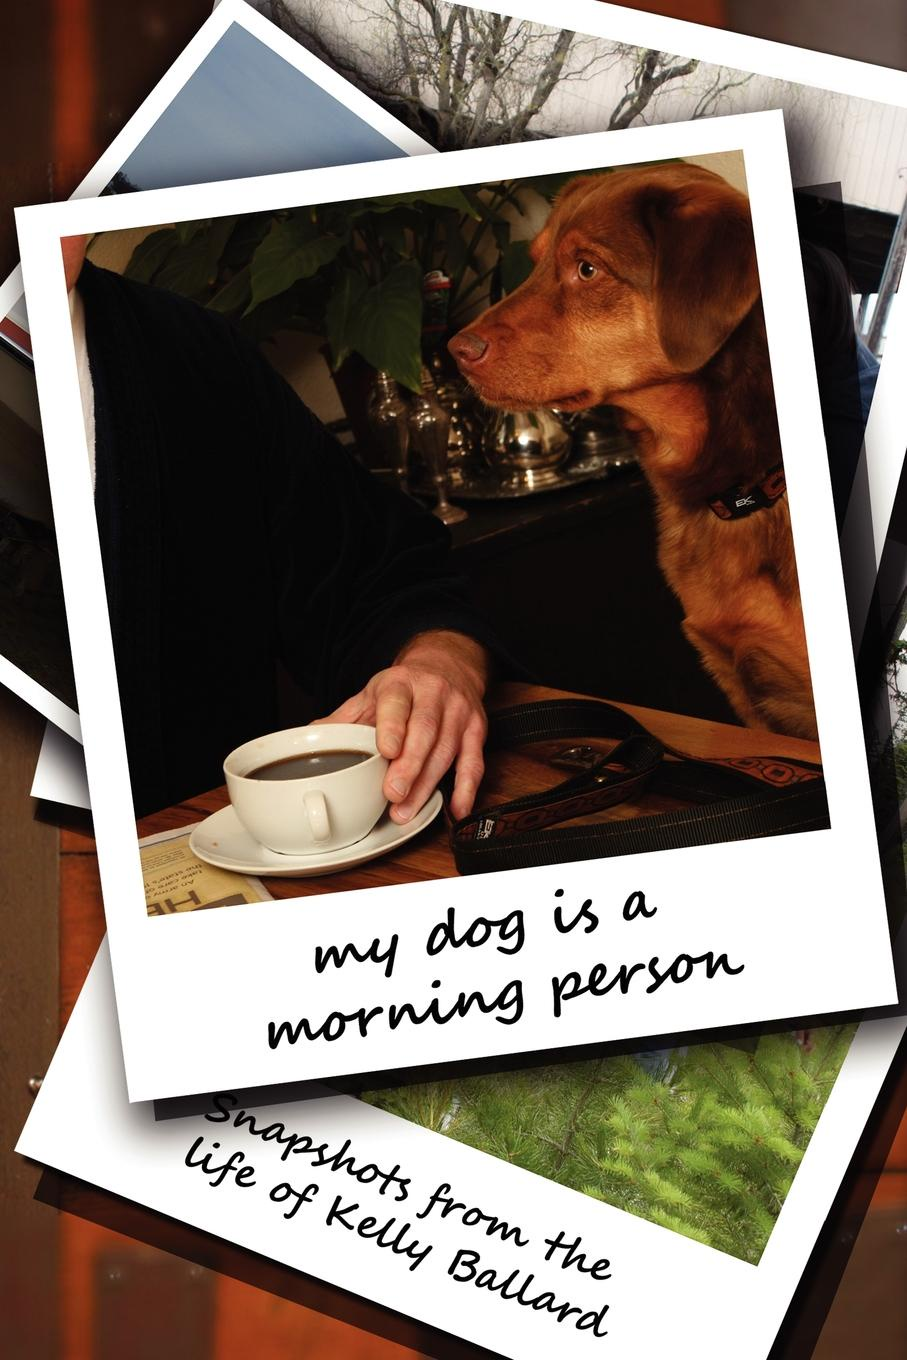 Kelly Ballard My Dog Is a Morning Person norriss a friends for life